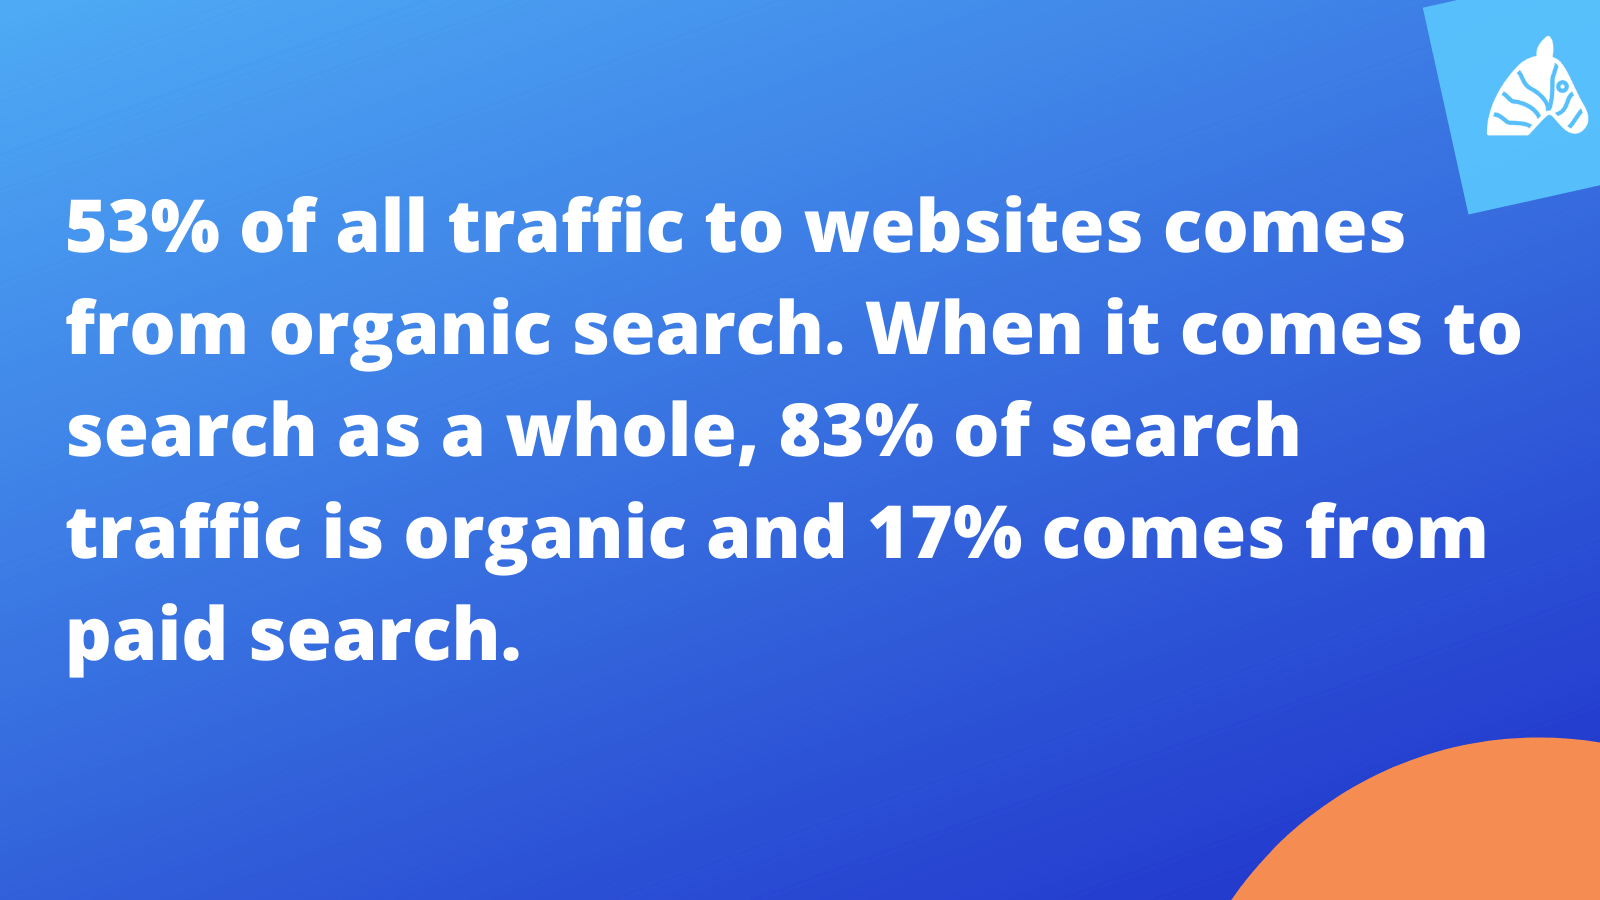 53% of all website traffic comes from organic search